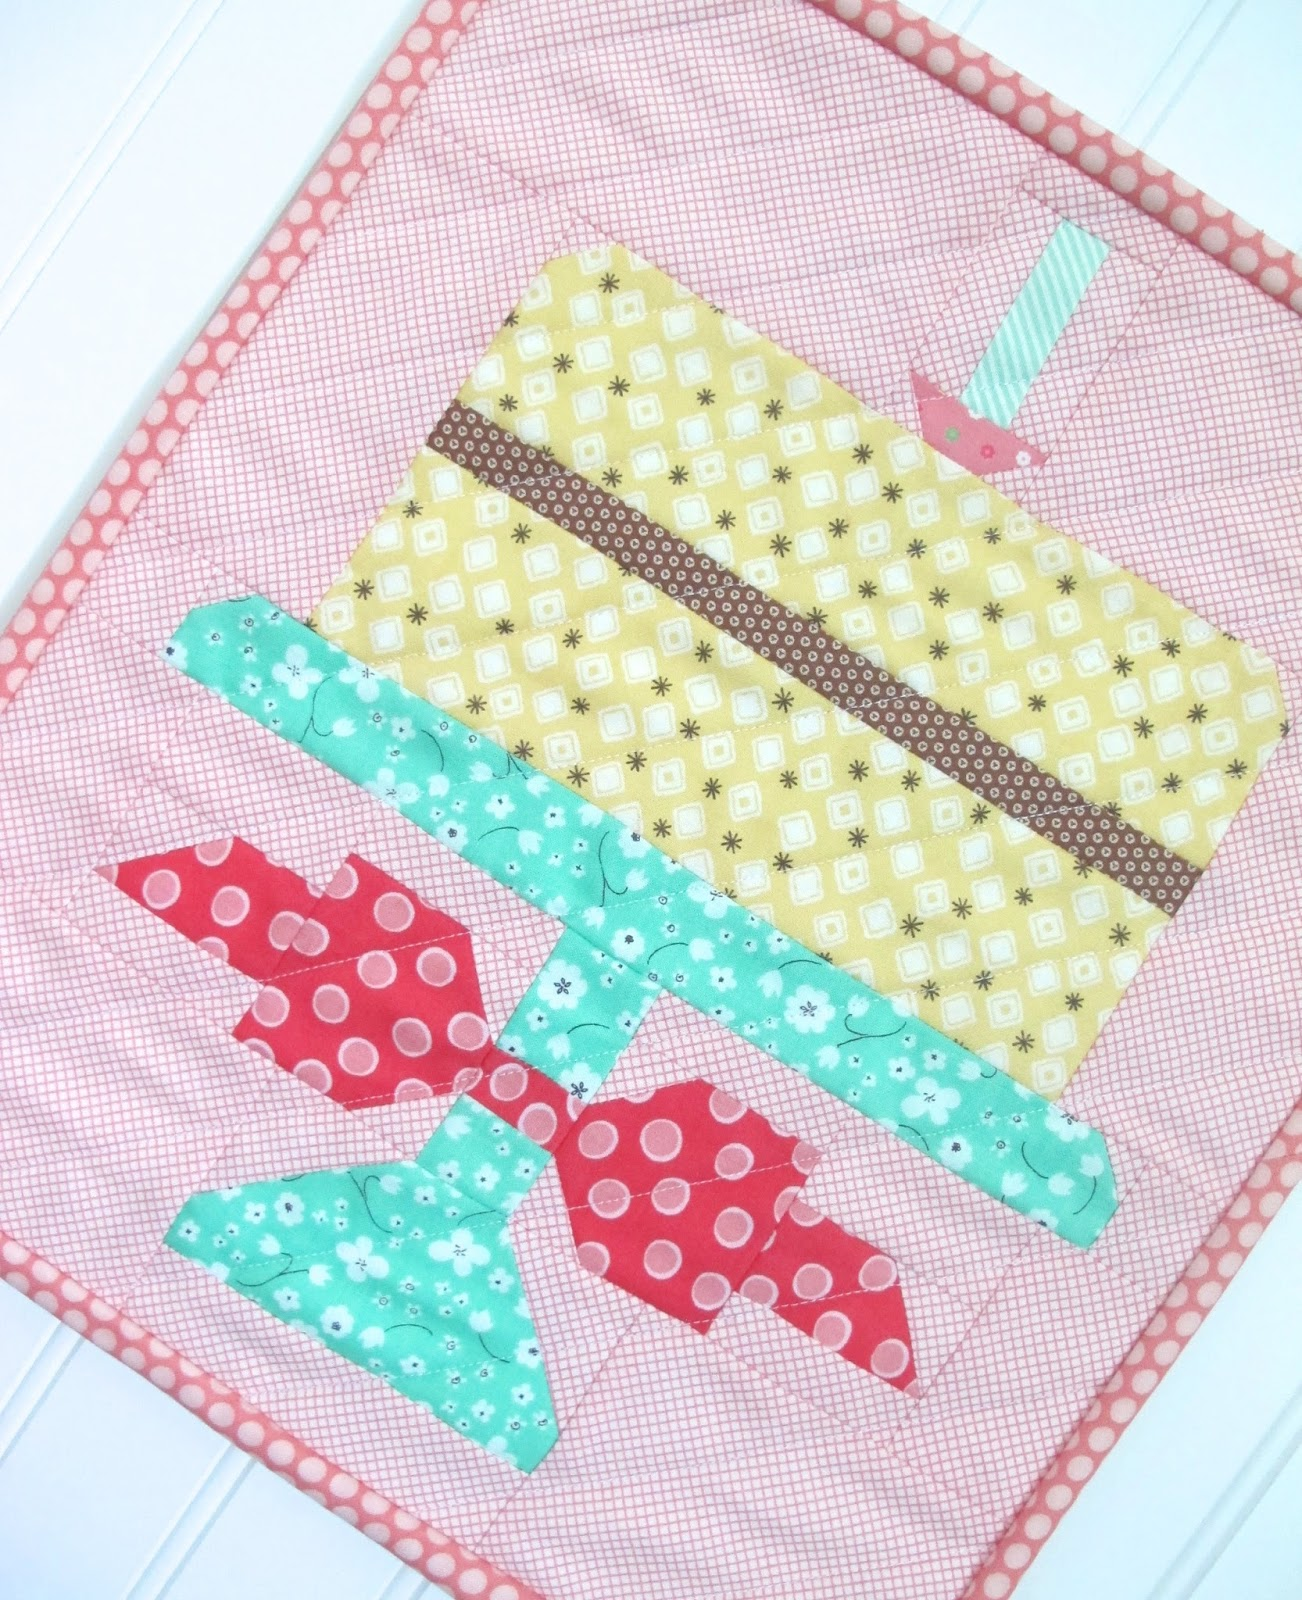 Bee In My Bonnet Quilty Fun Is Having A Birthday Party And Youre InvitedFree Cake Pattern From Me To You